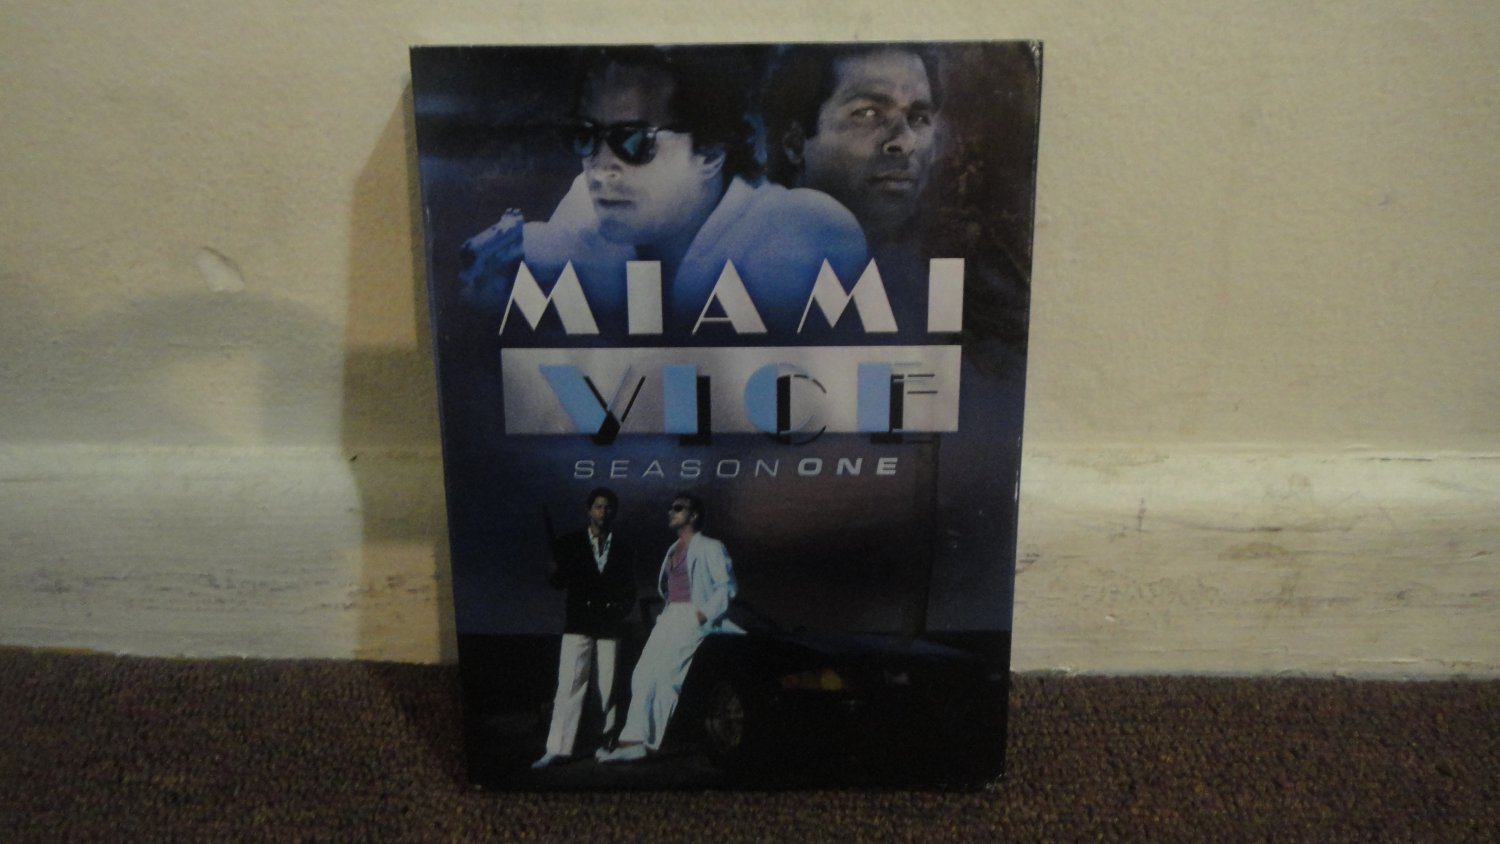 MIAMI VICE(1980's TV) - SEASON 1, First Season, nice condition. LOOK!!!